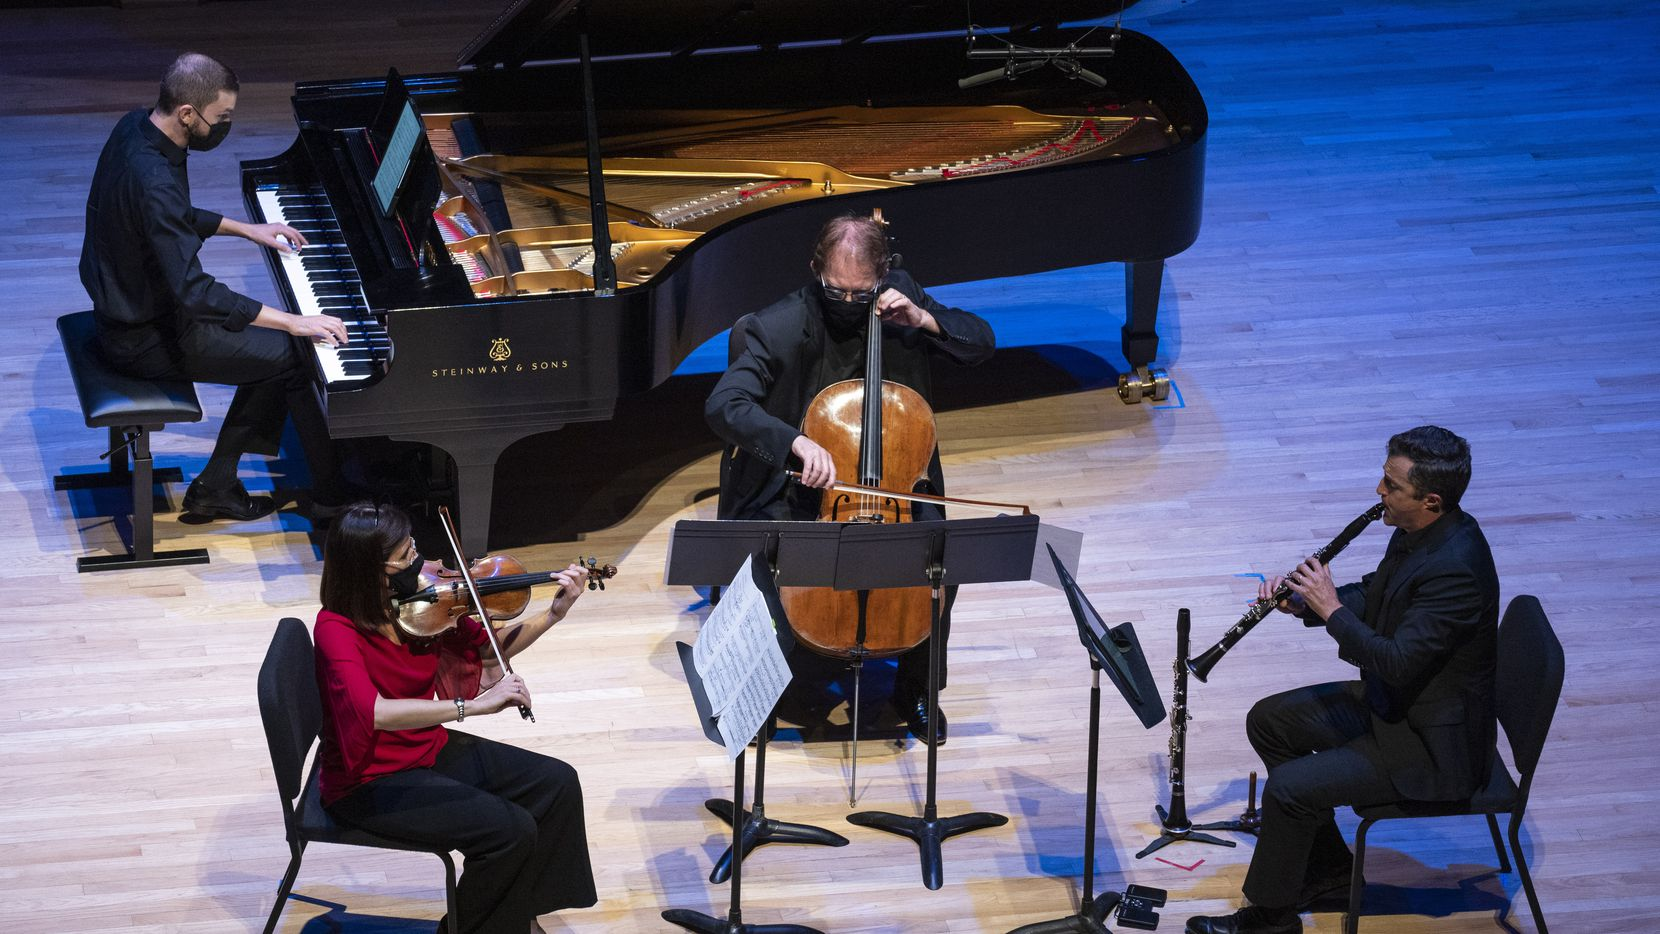 Evan Mitchell, piano, Maria Schleuning, violin, Jolyon Pegis, cello, and Stephen Ahearn, clarinet, perform 'Swallowing Fire' (2020-21) by American composer Peter Askim during Voices of Change's season opening concert on Sept. 19 at Southern Methodist University's Caruth Auditorium in Dallas.